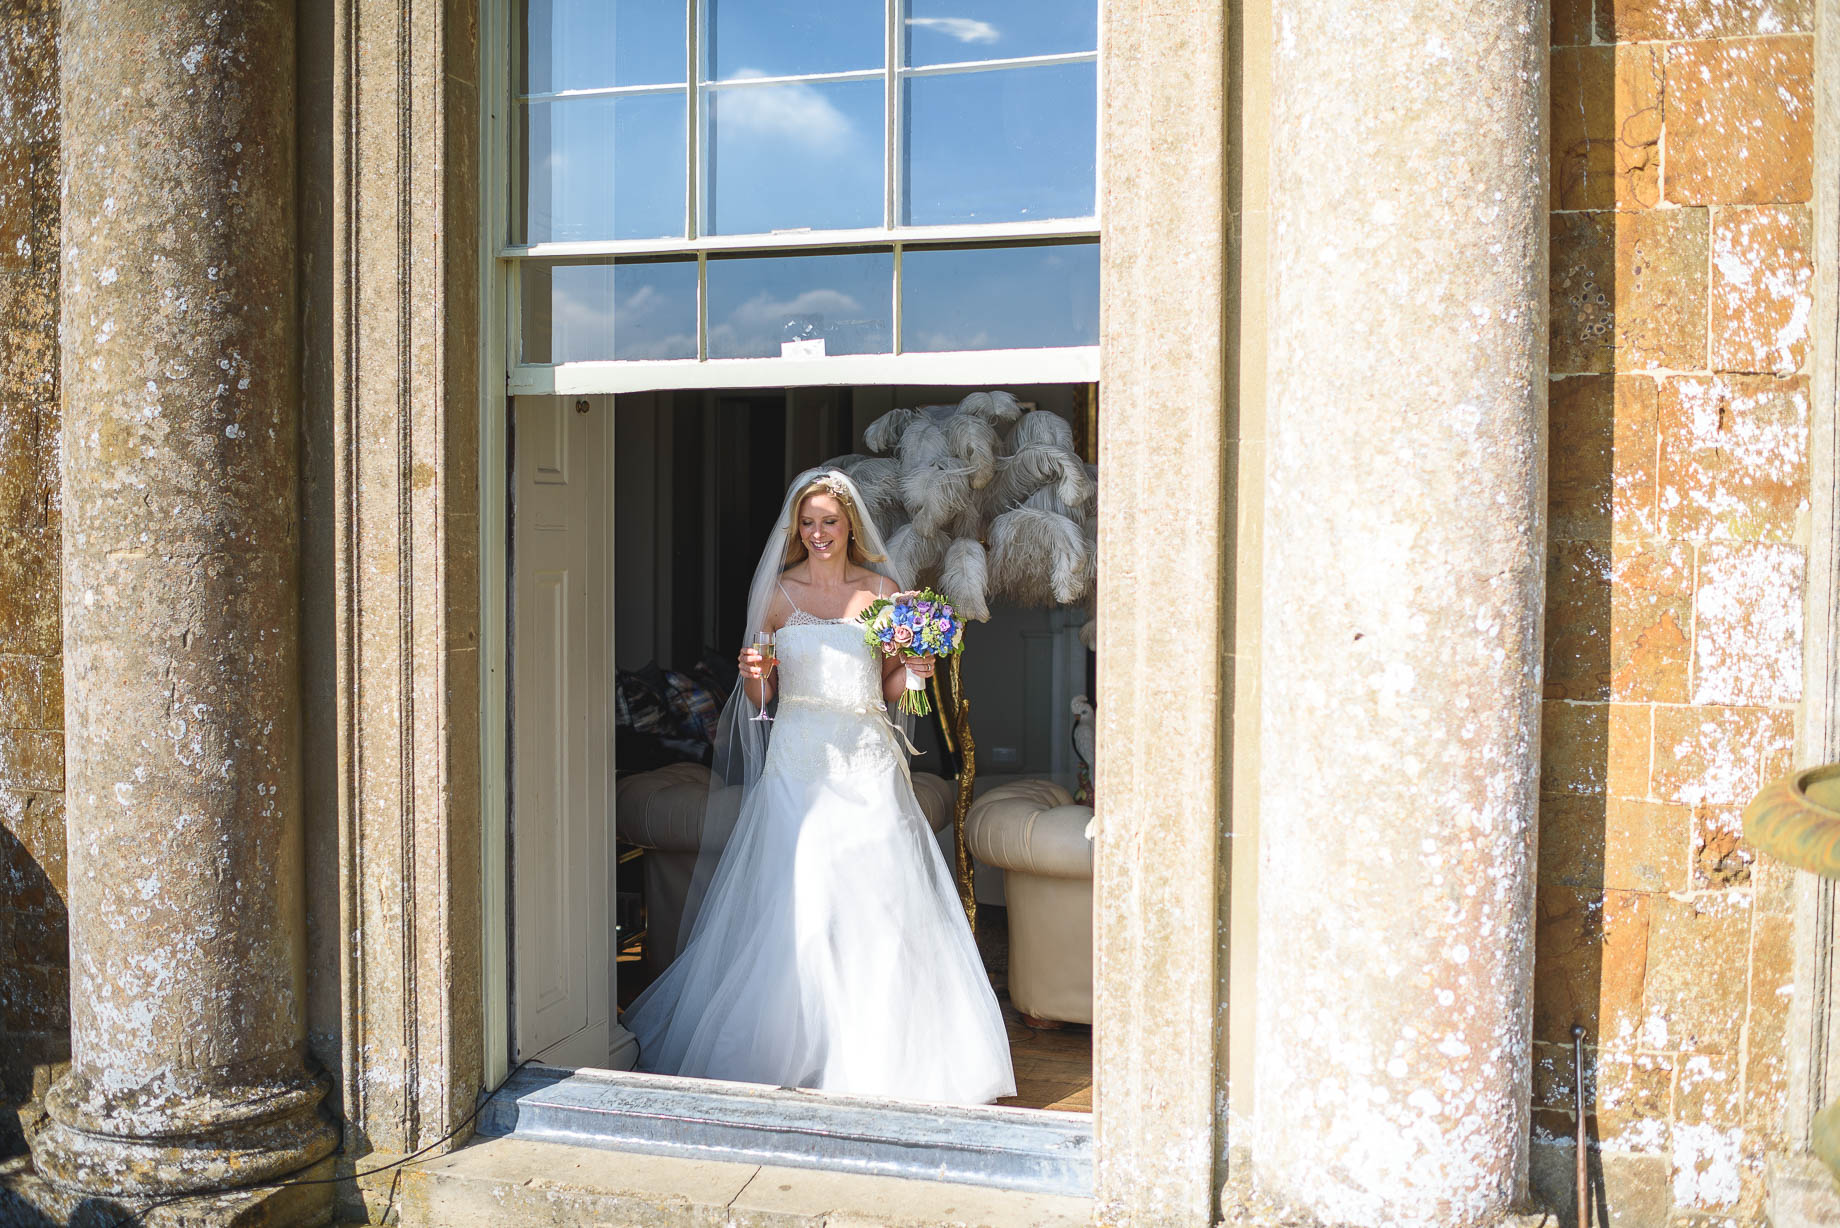 Aynhoe Park wedding photography - Guy Collier - Becky and Nick (119 of 233)